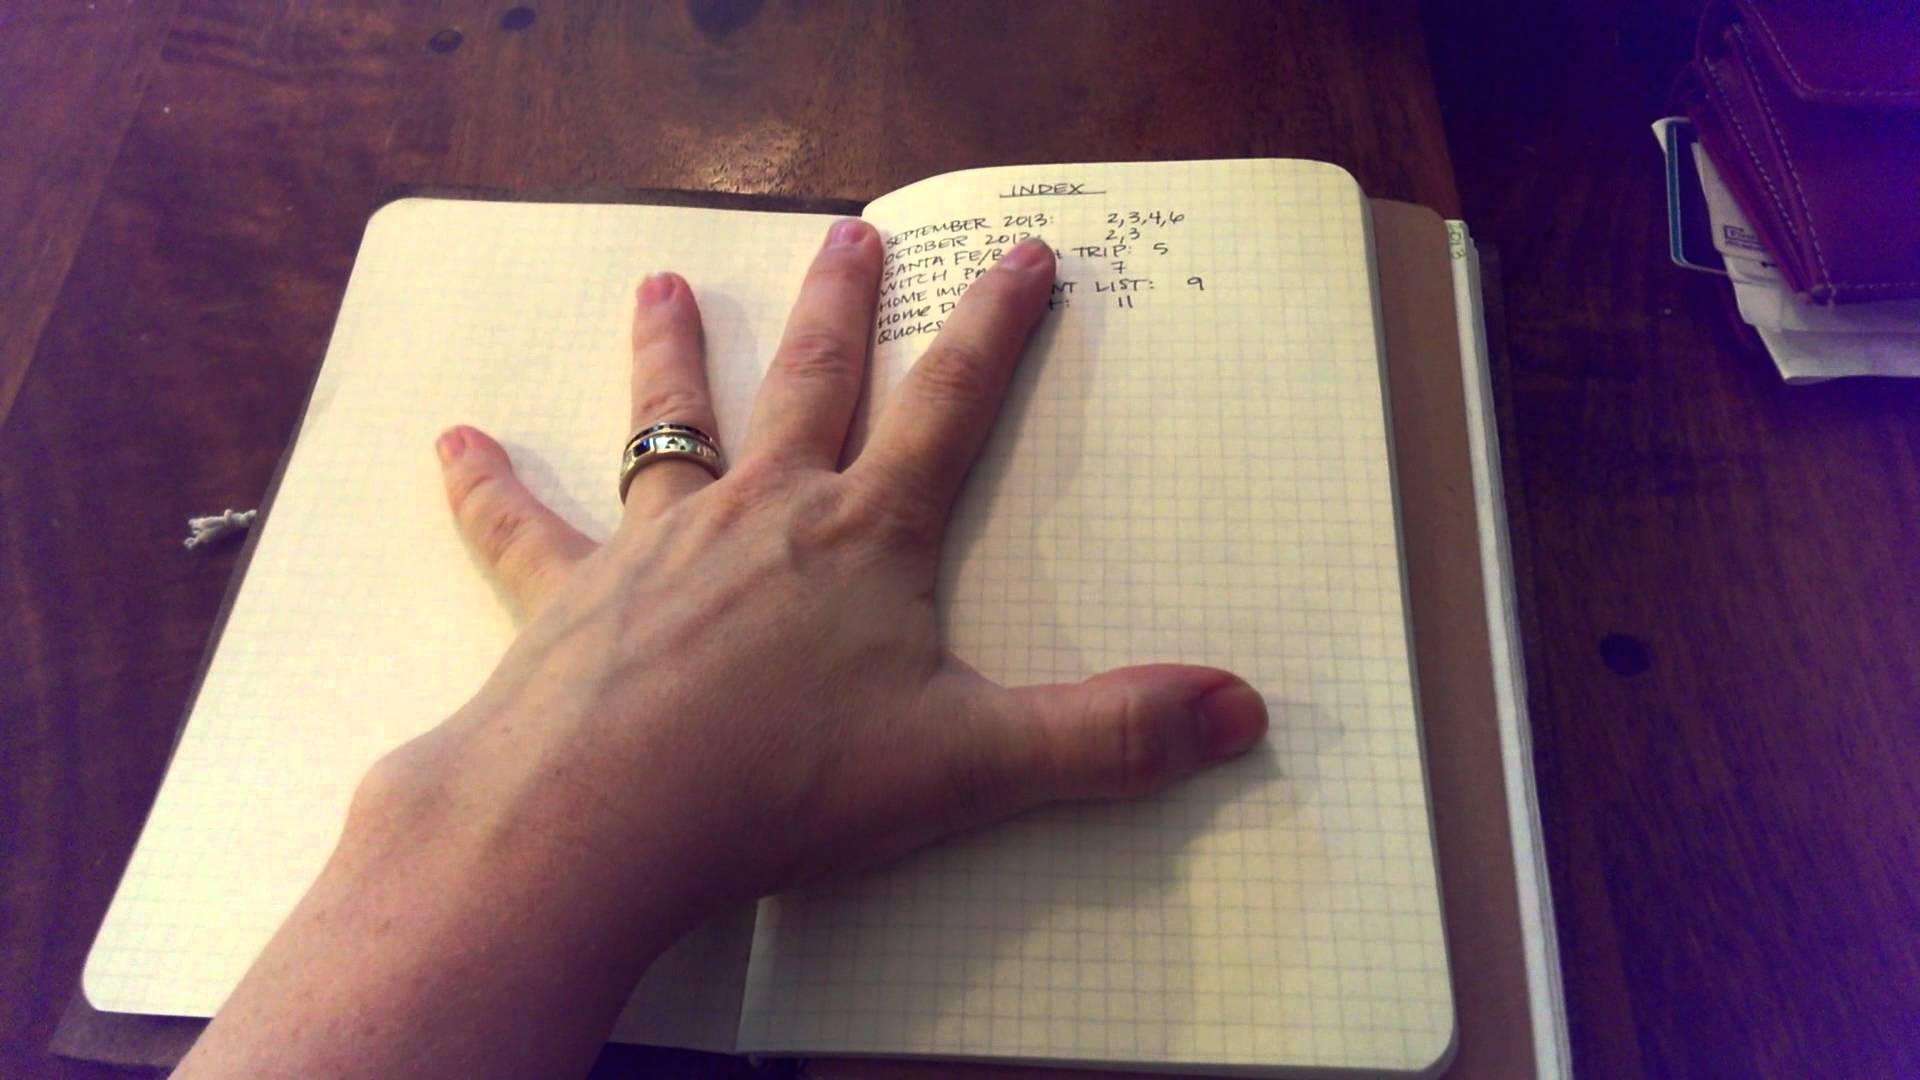 Back to Basics: What Makes Bullet Journal Notes So Popular?